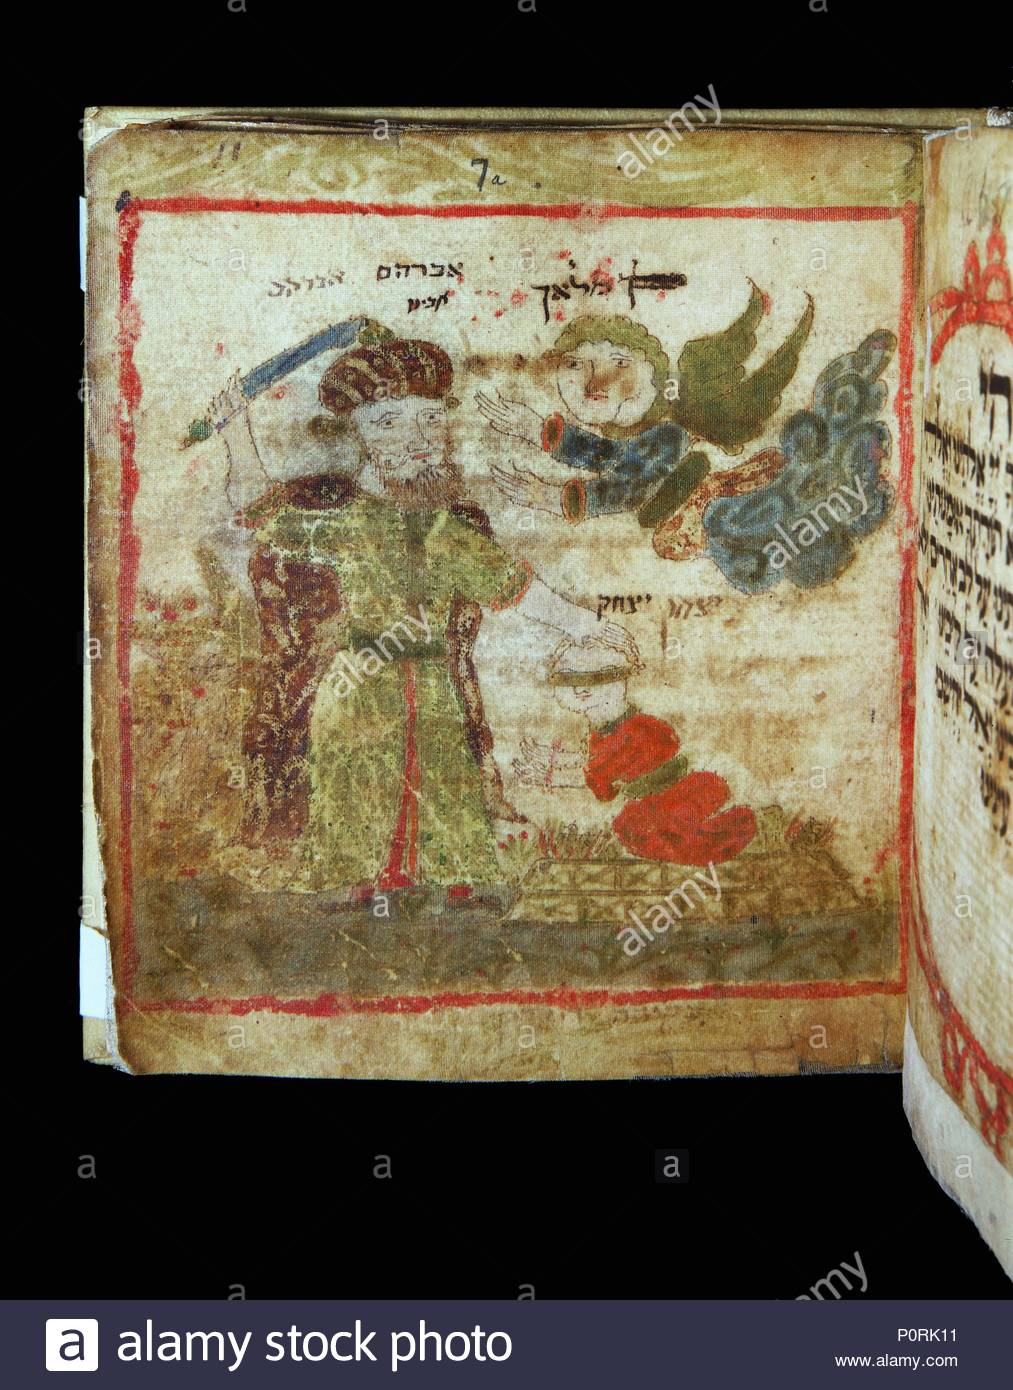 prayerbook from corfu greece 1692 a miscellaneous collection of